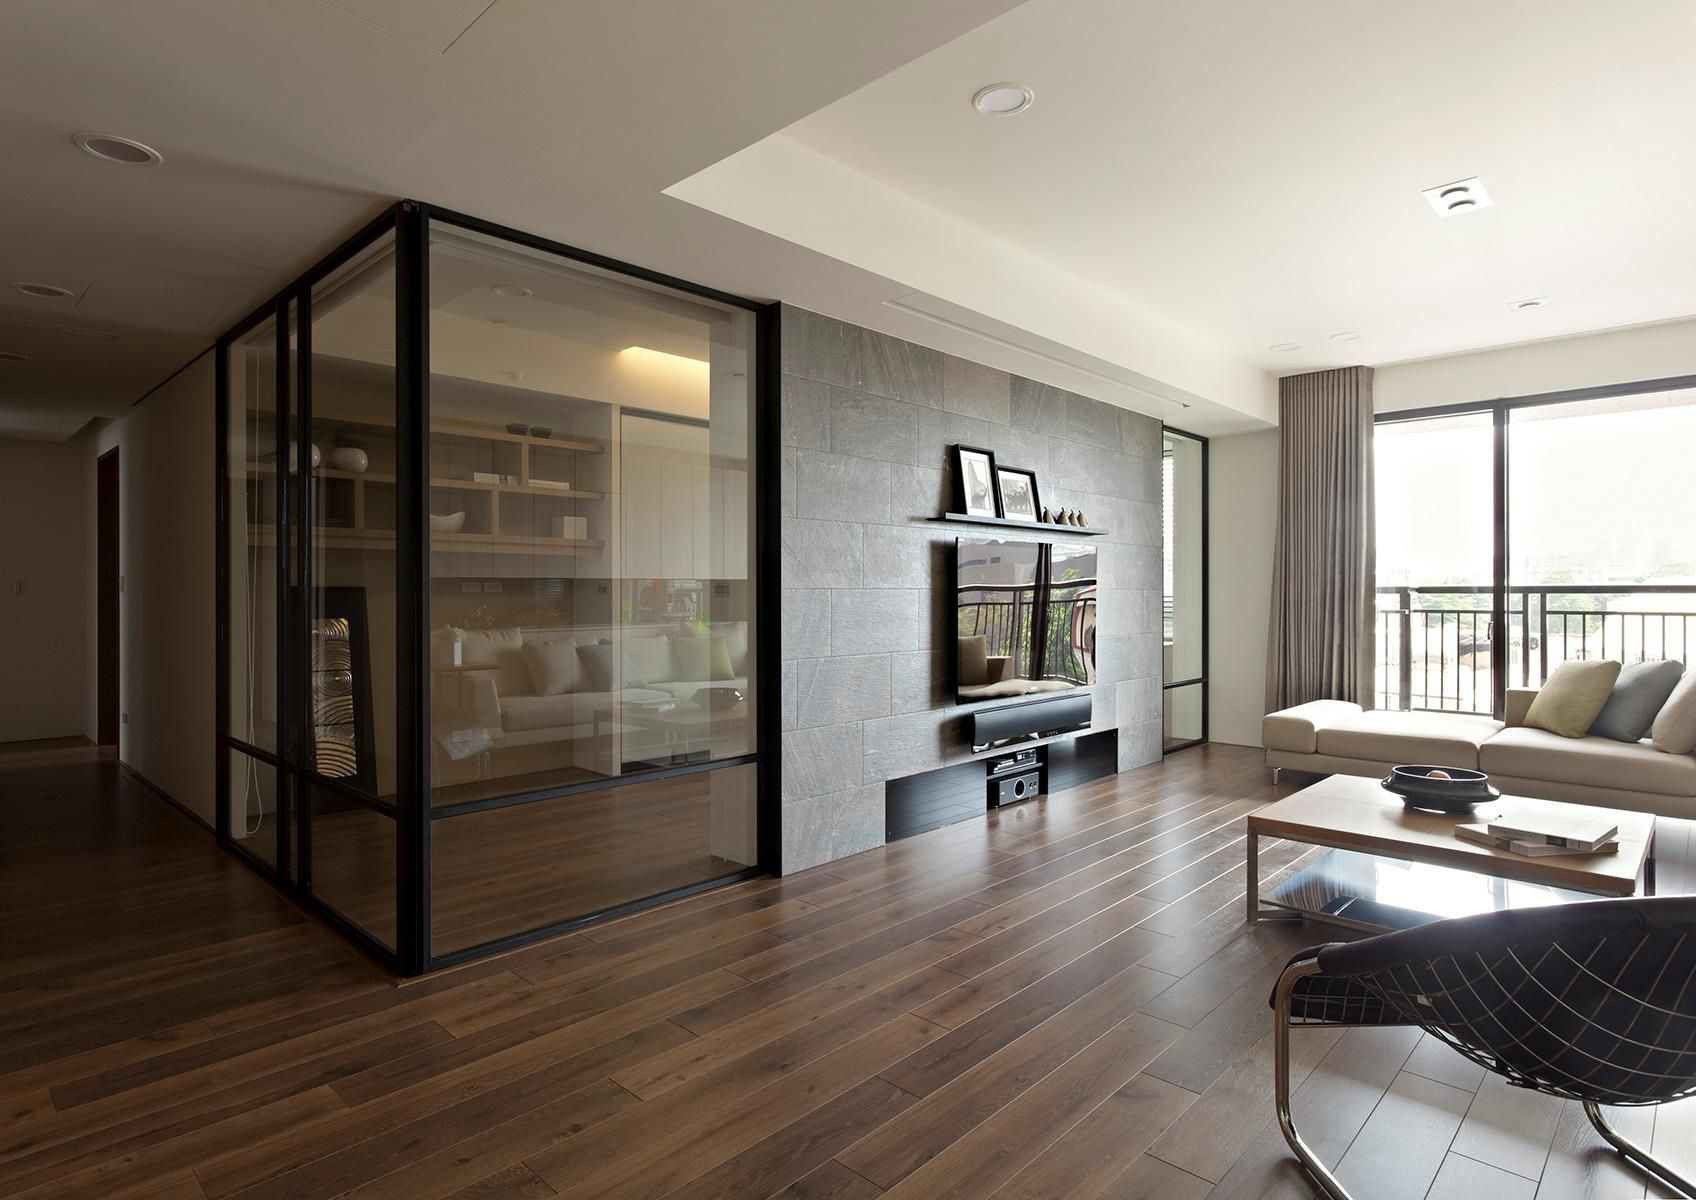 Living Room Design Dark Laminate Flooring Tile Glass Door Wall